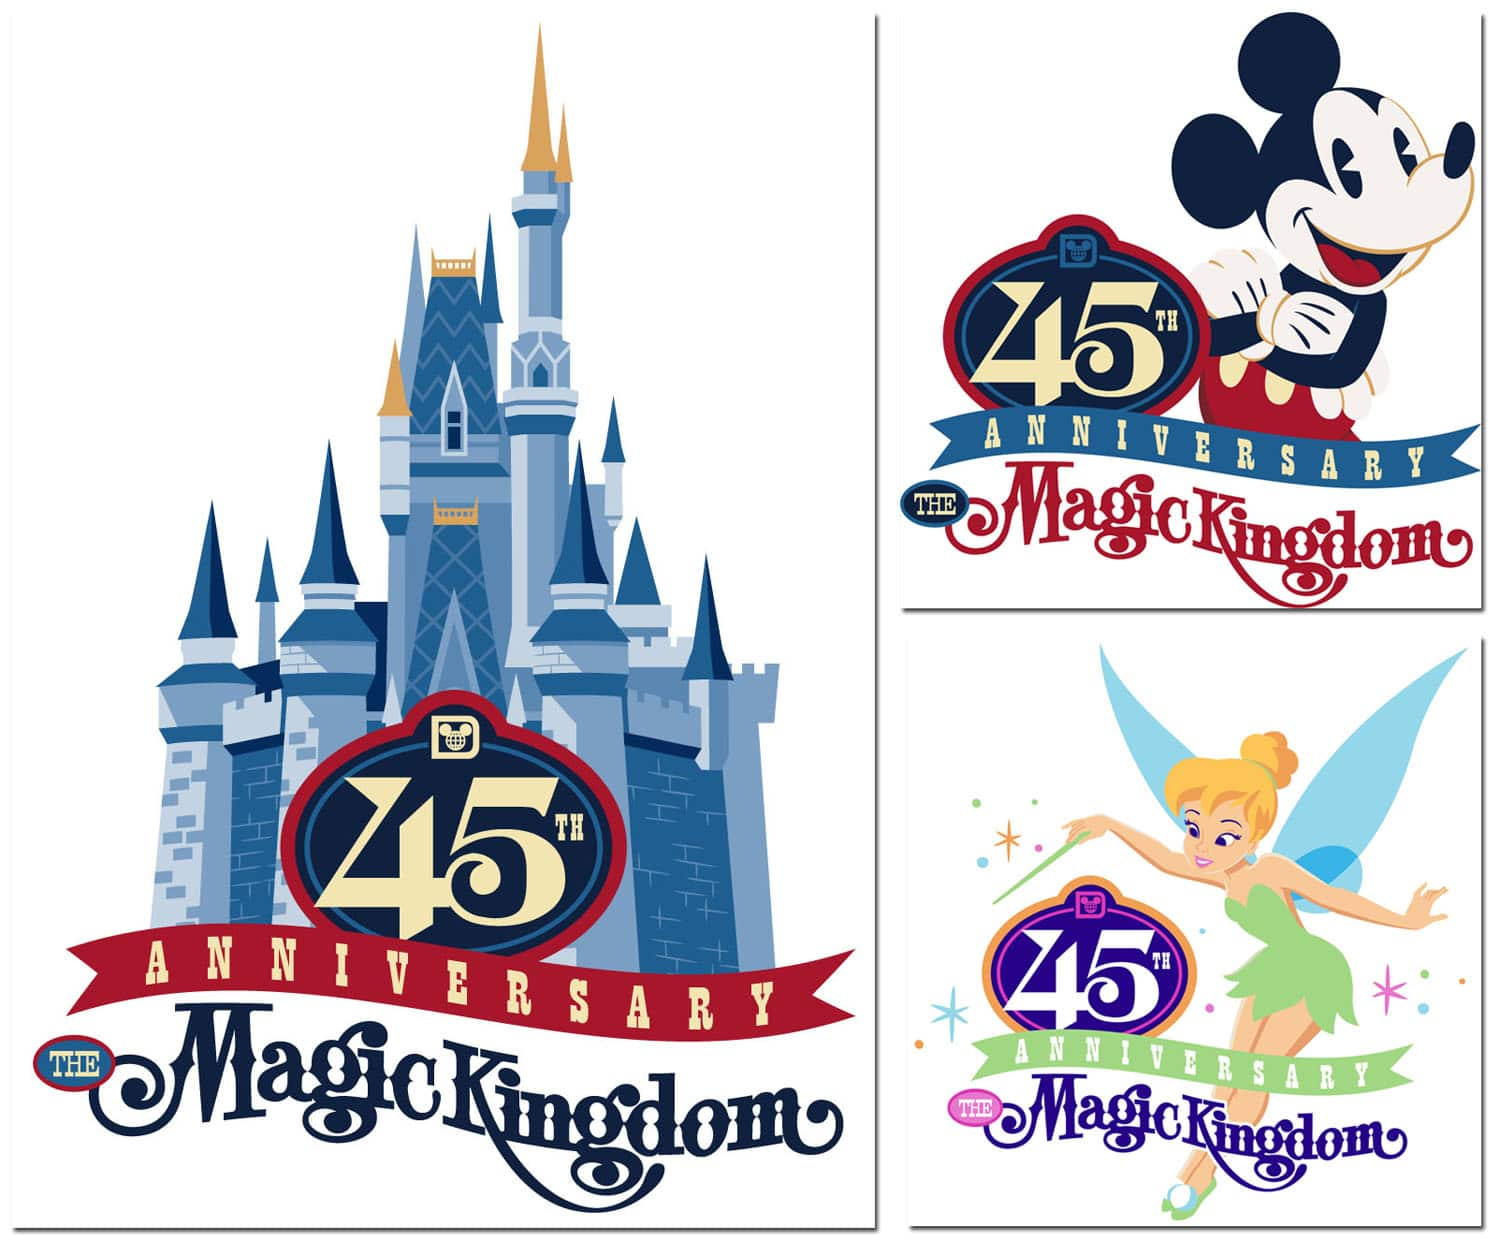 First Look at Magic Kingdom 45th Anniversary Merchandise Artwork